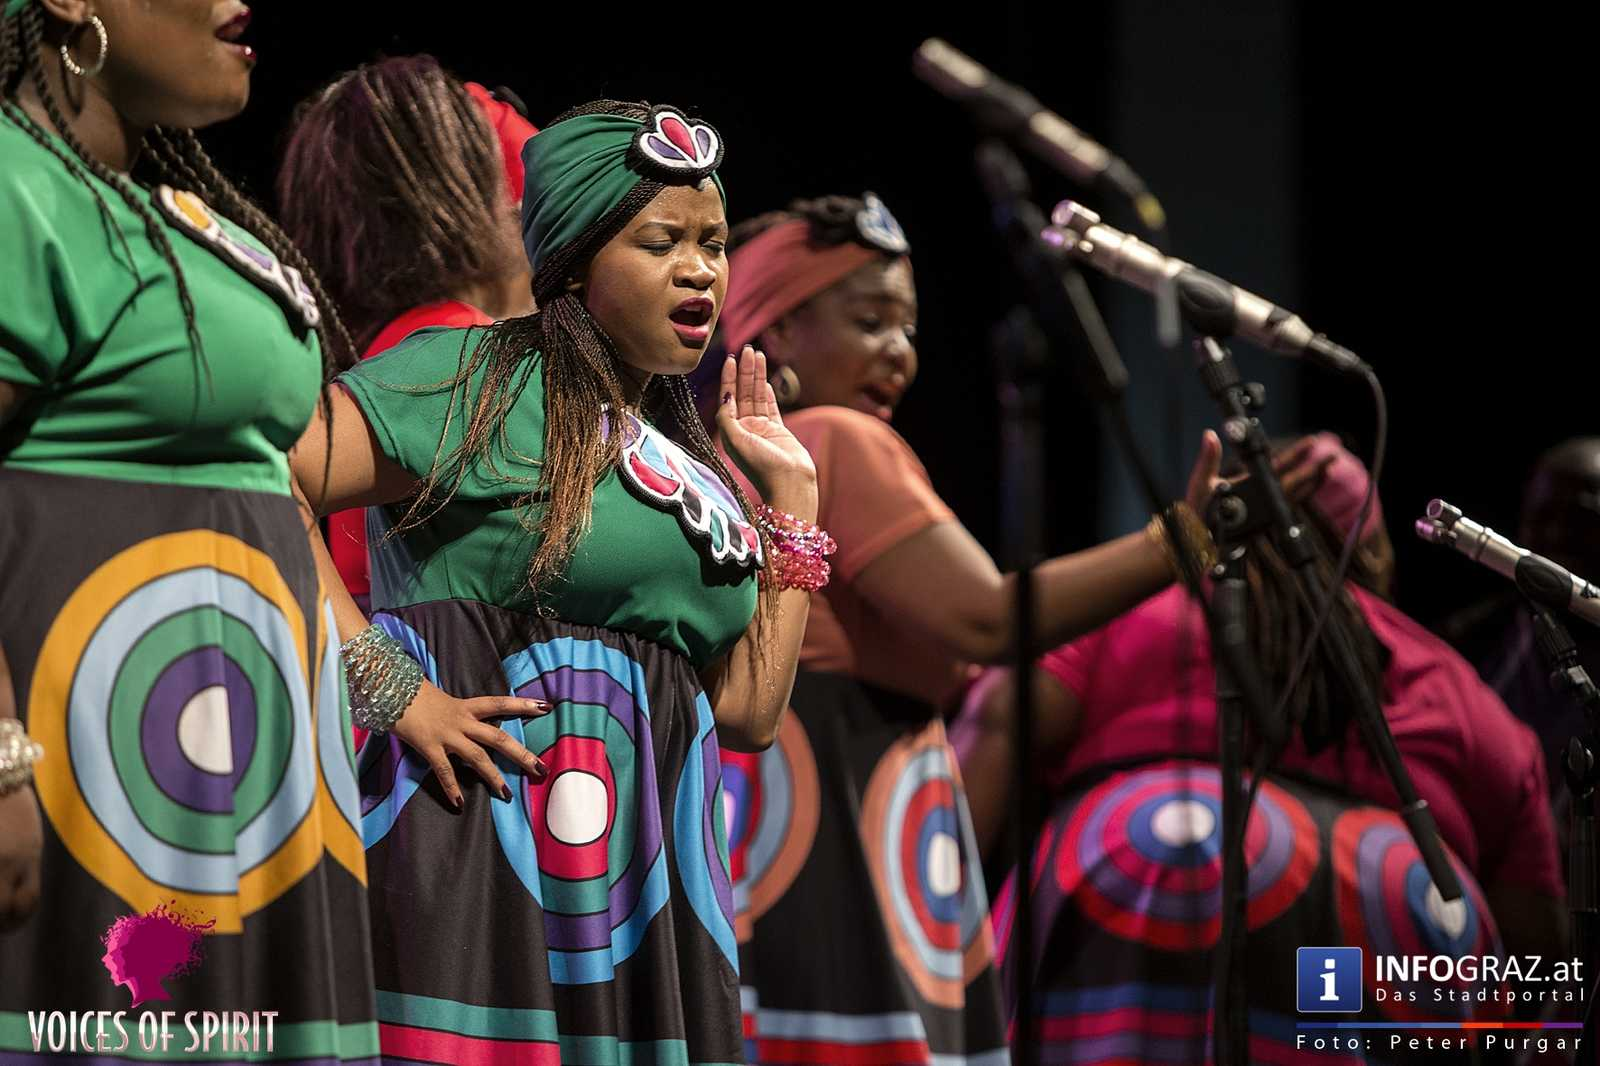 soweto gospel choir internationales chorfestival statdthalle graz voices of spirit eroeffnung festivals 2016 043